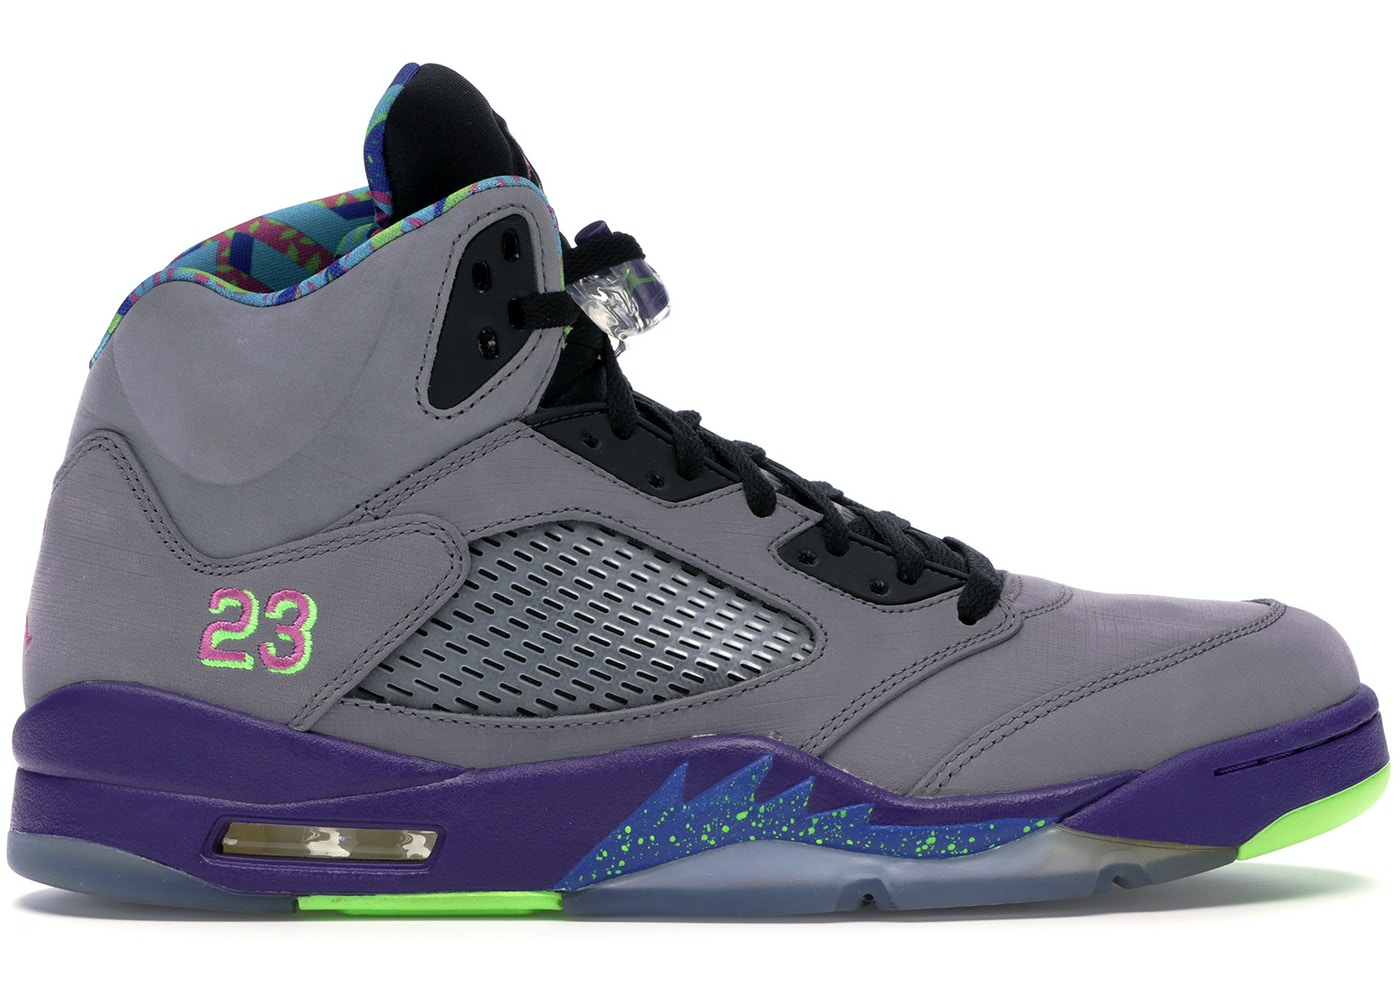 best service e9c81 da936 Jordan 5 Retro Bel-Air - 621958-090